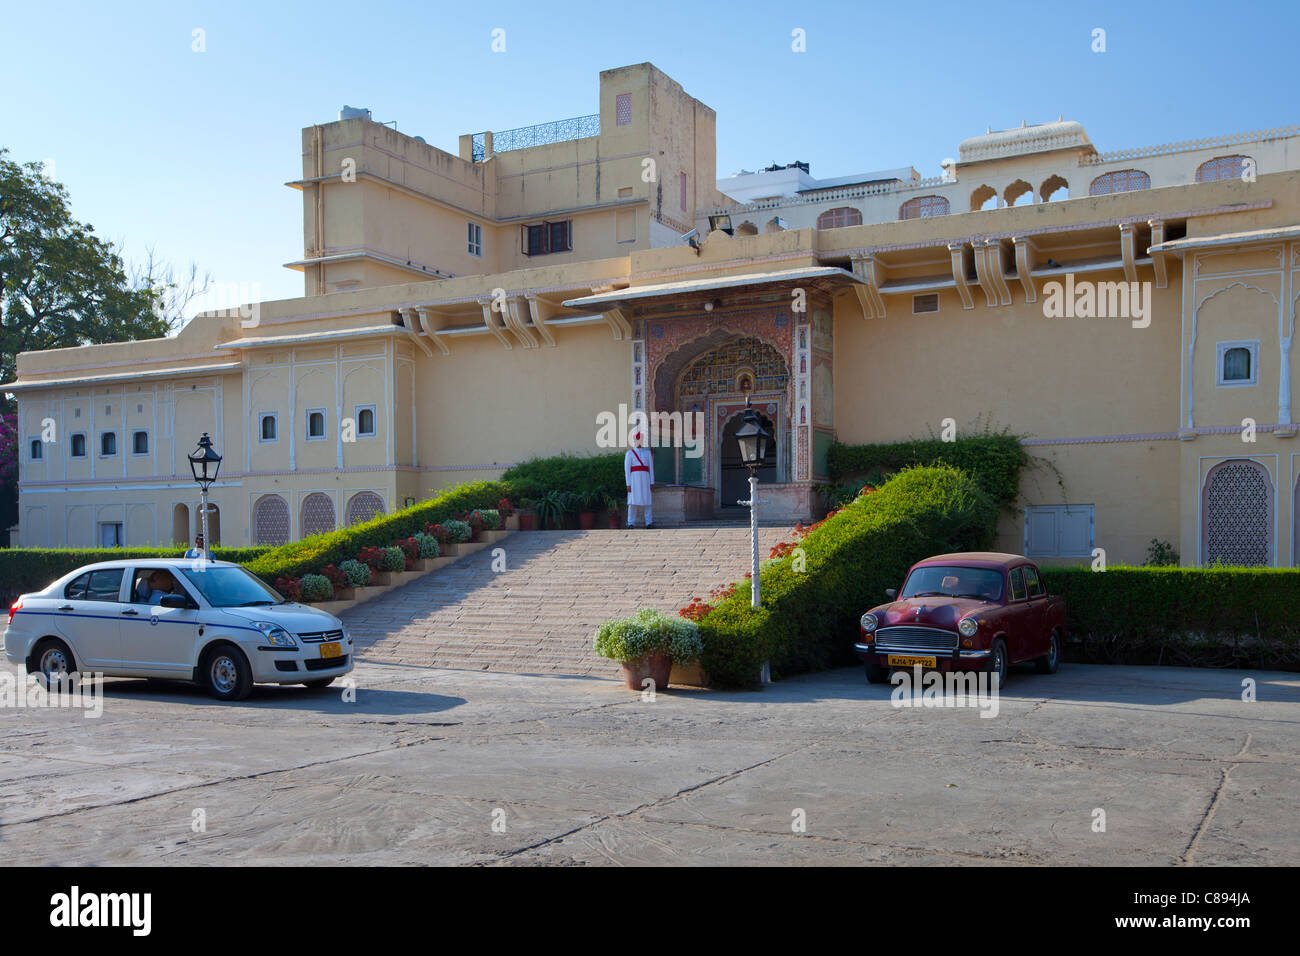 Ceremonial Guard at Samode Haveli luxury hotel, former merchant's house, in Jaipur, Rajasthan, Northern India - Stock Image